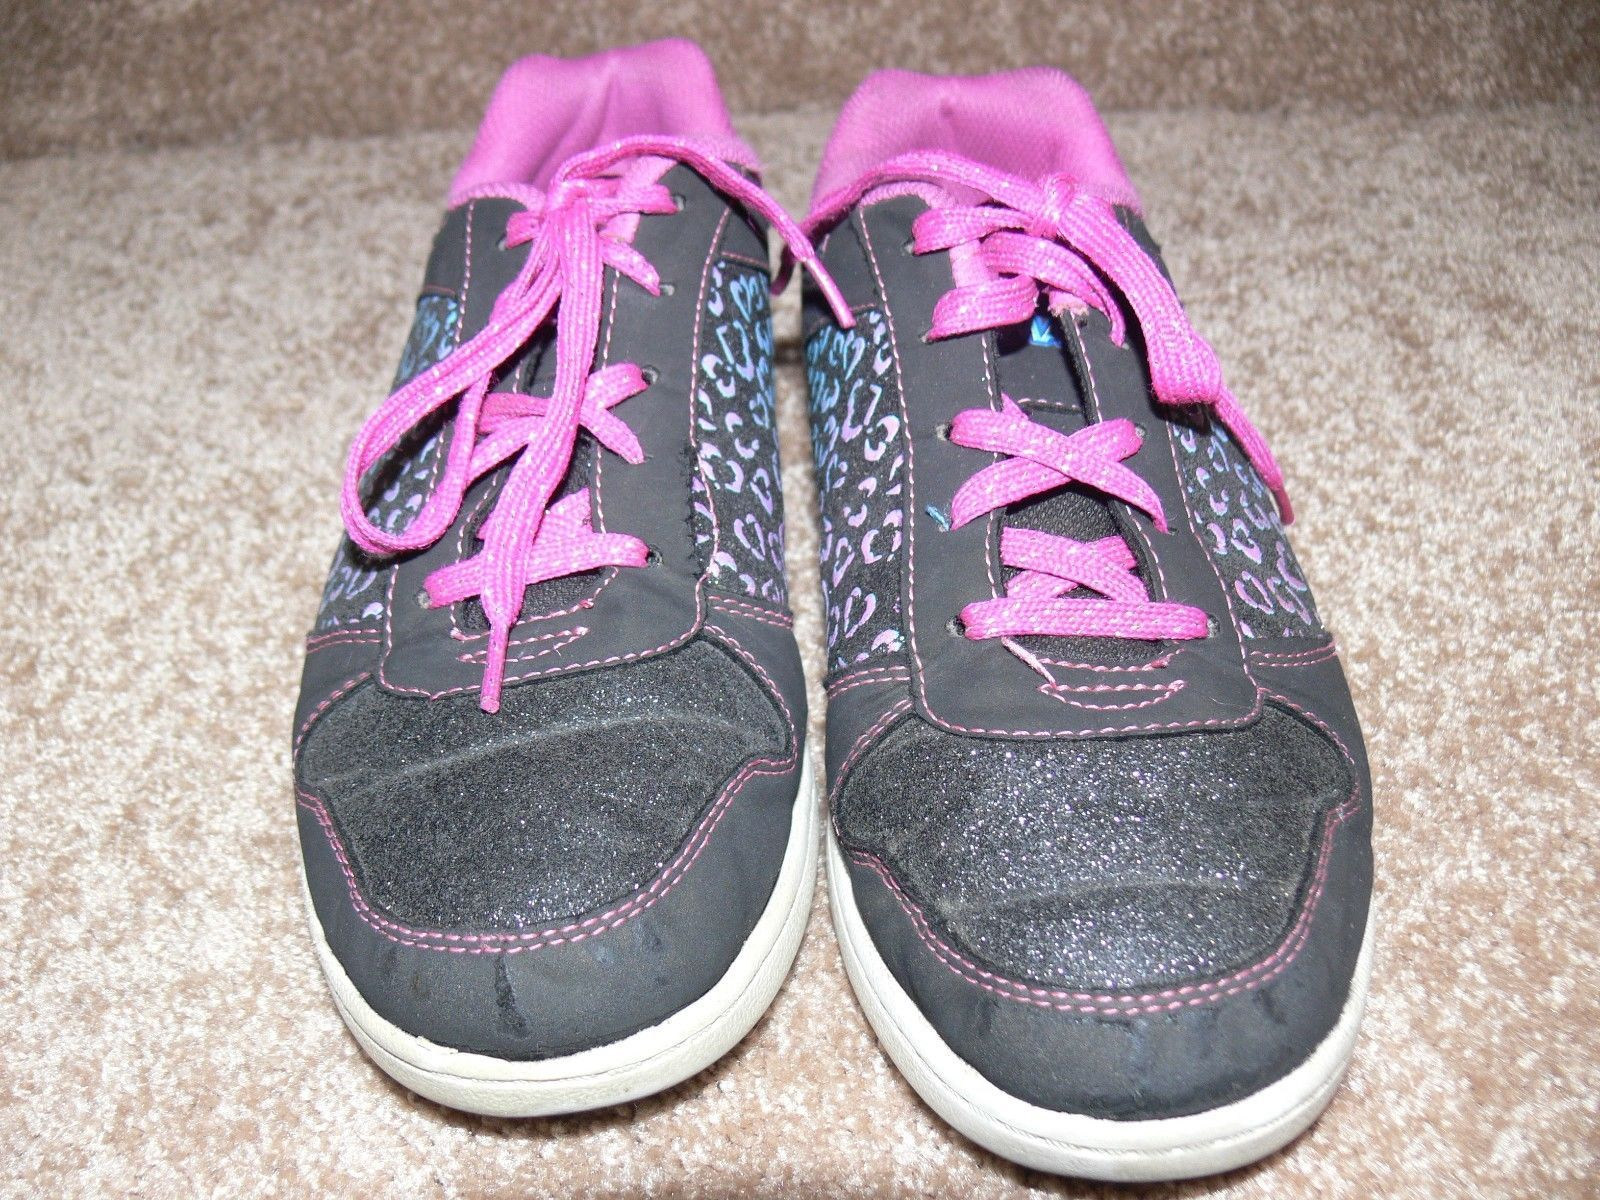 DISNEY LIV AND MADDIE Shoes Youth Sneakers Glitter Hearts Girls Size 5 cz image 2